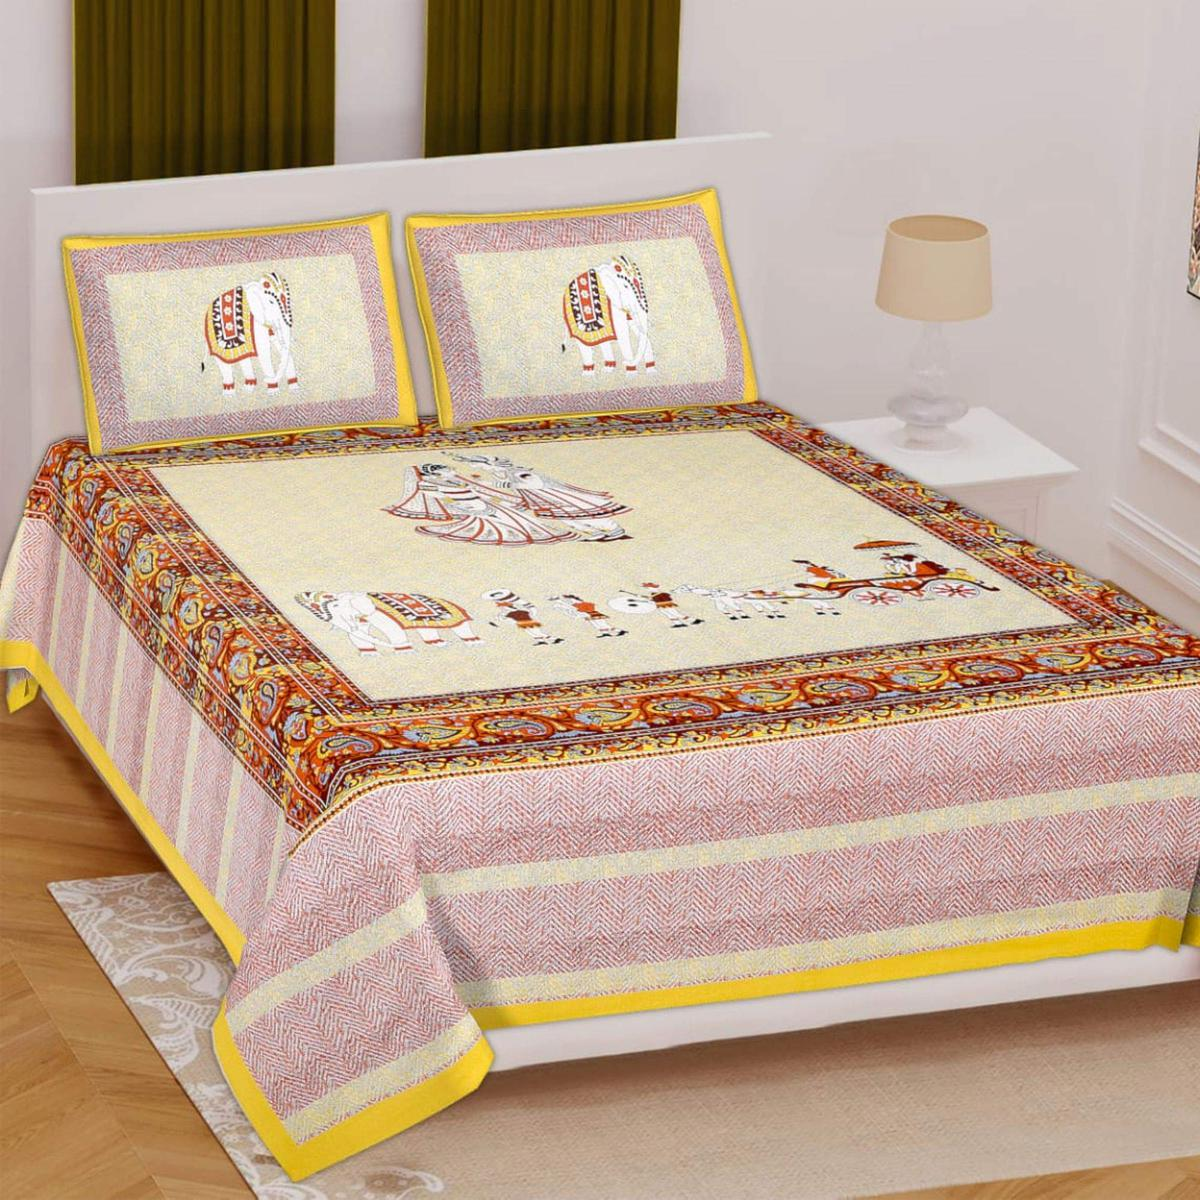 POOJA FASHION - Cream Colored Printed Queen Double Cotton Bedsheet With 2 Pillow Cover